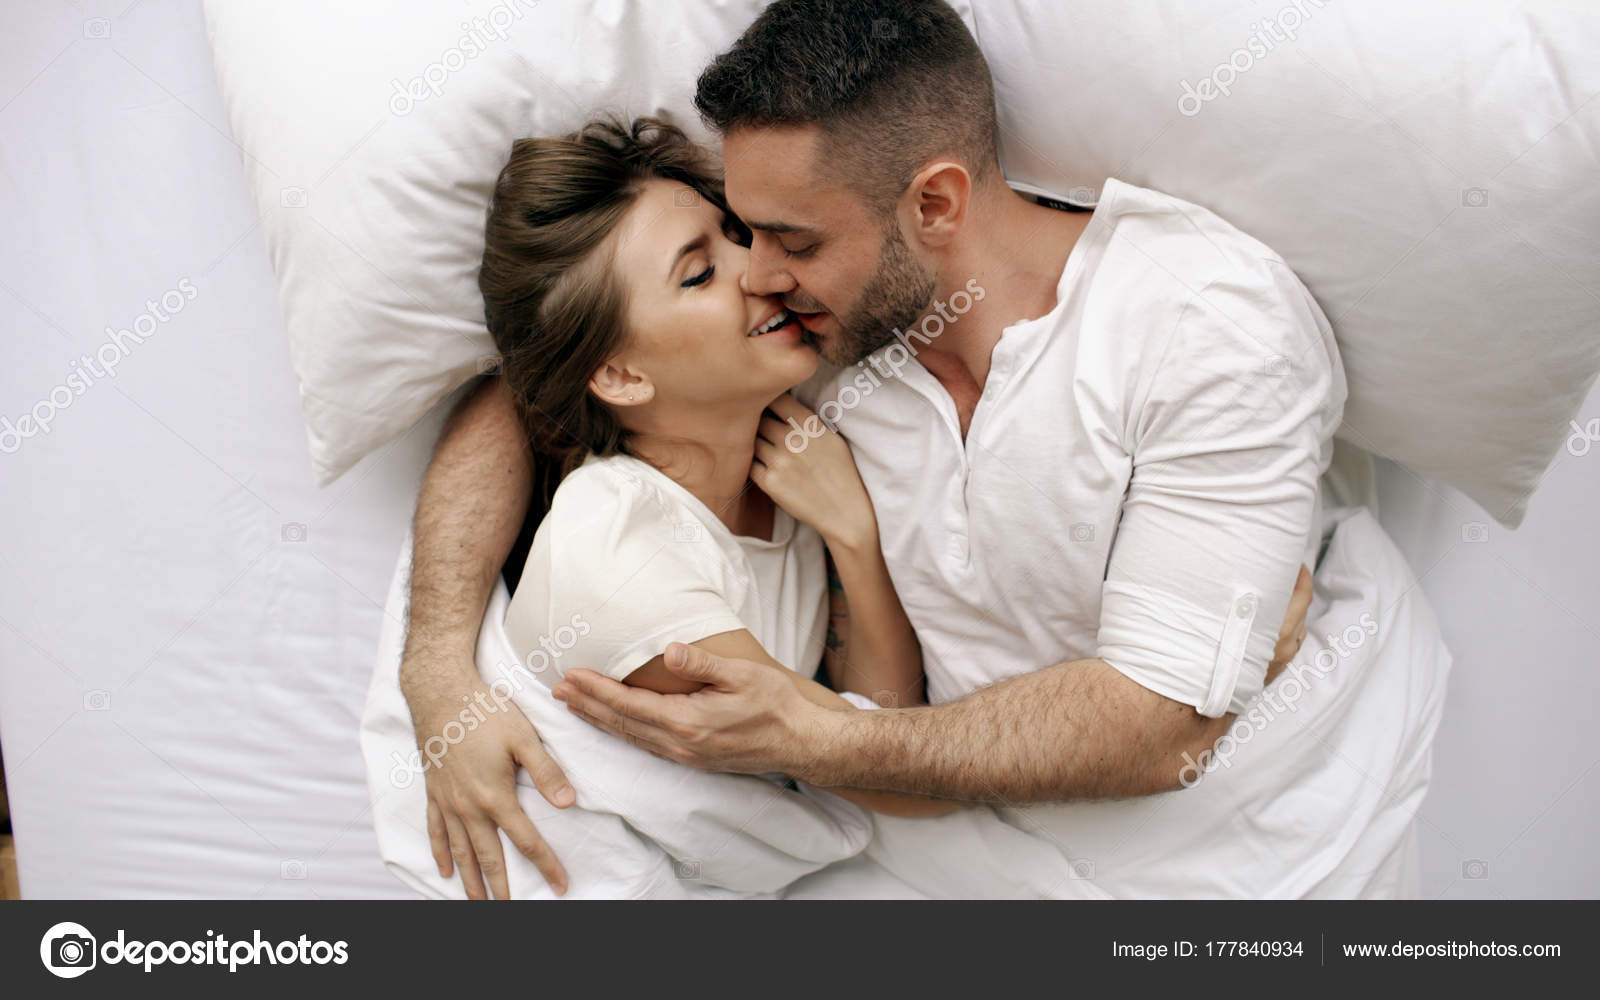 Young Beautiful And Loving Couple Kiss Hug Into Bed While Waking Up In The Morning